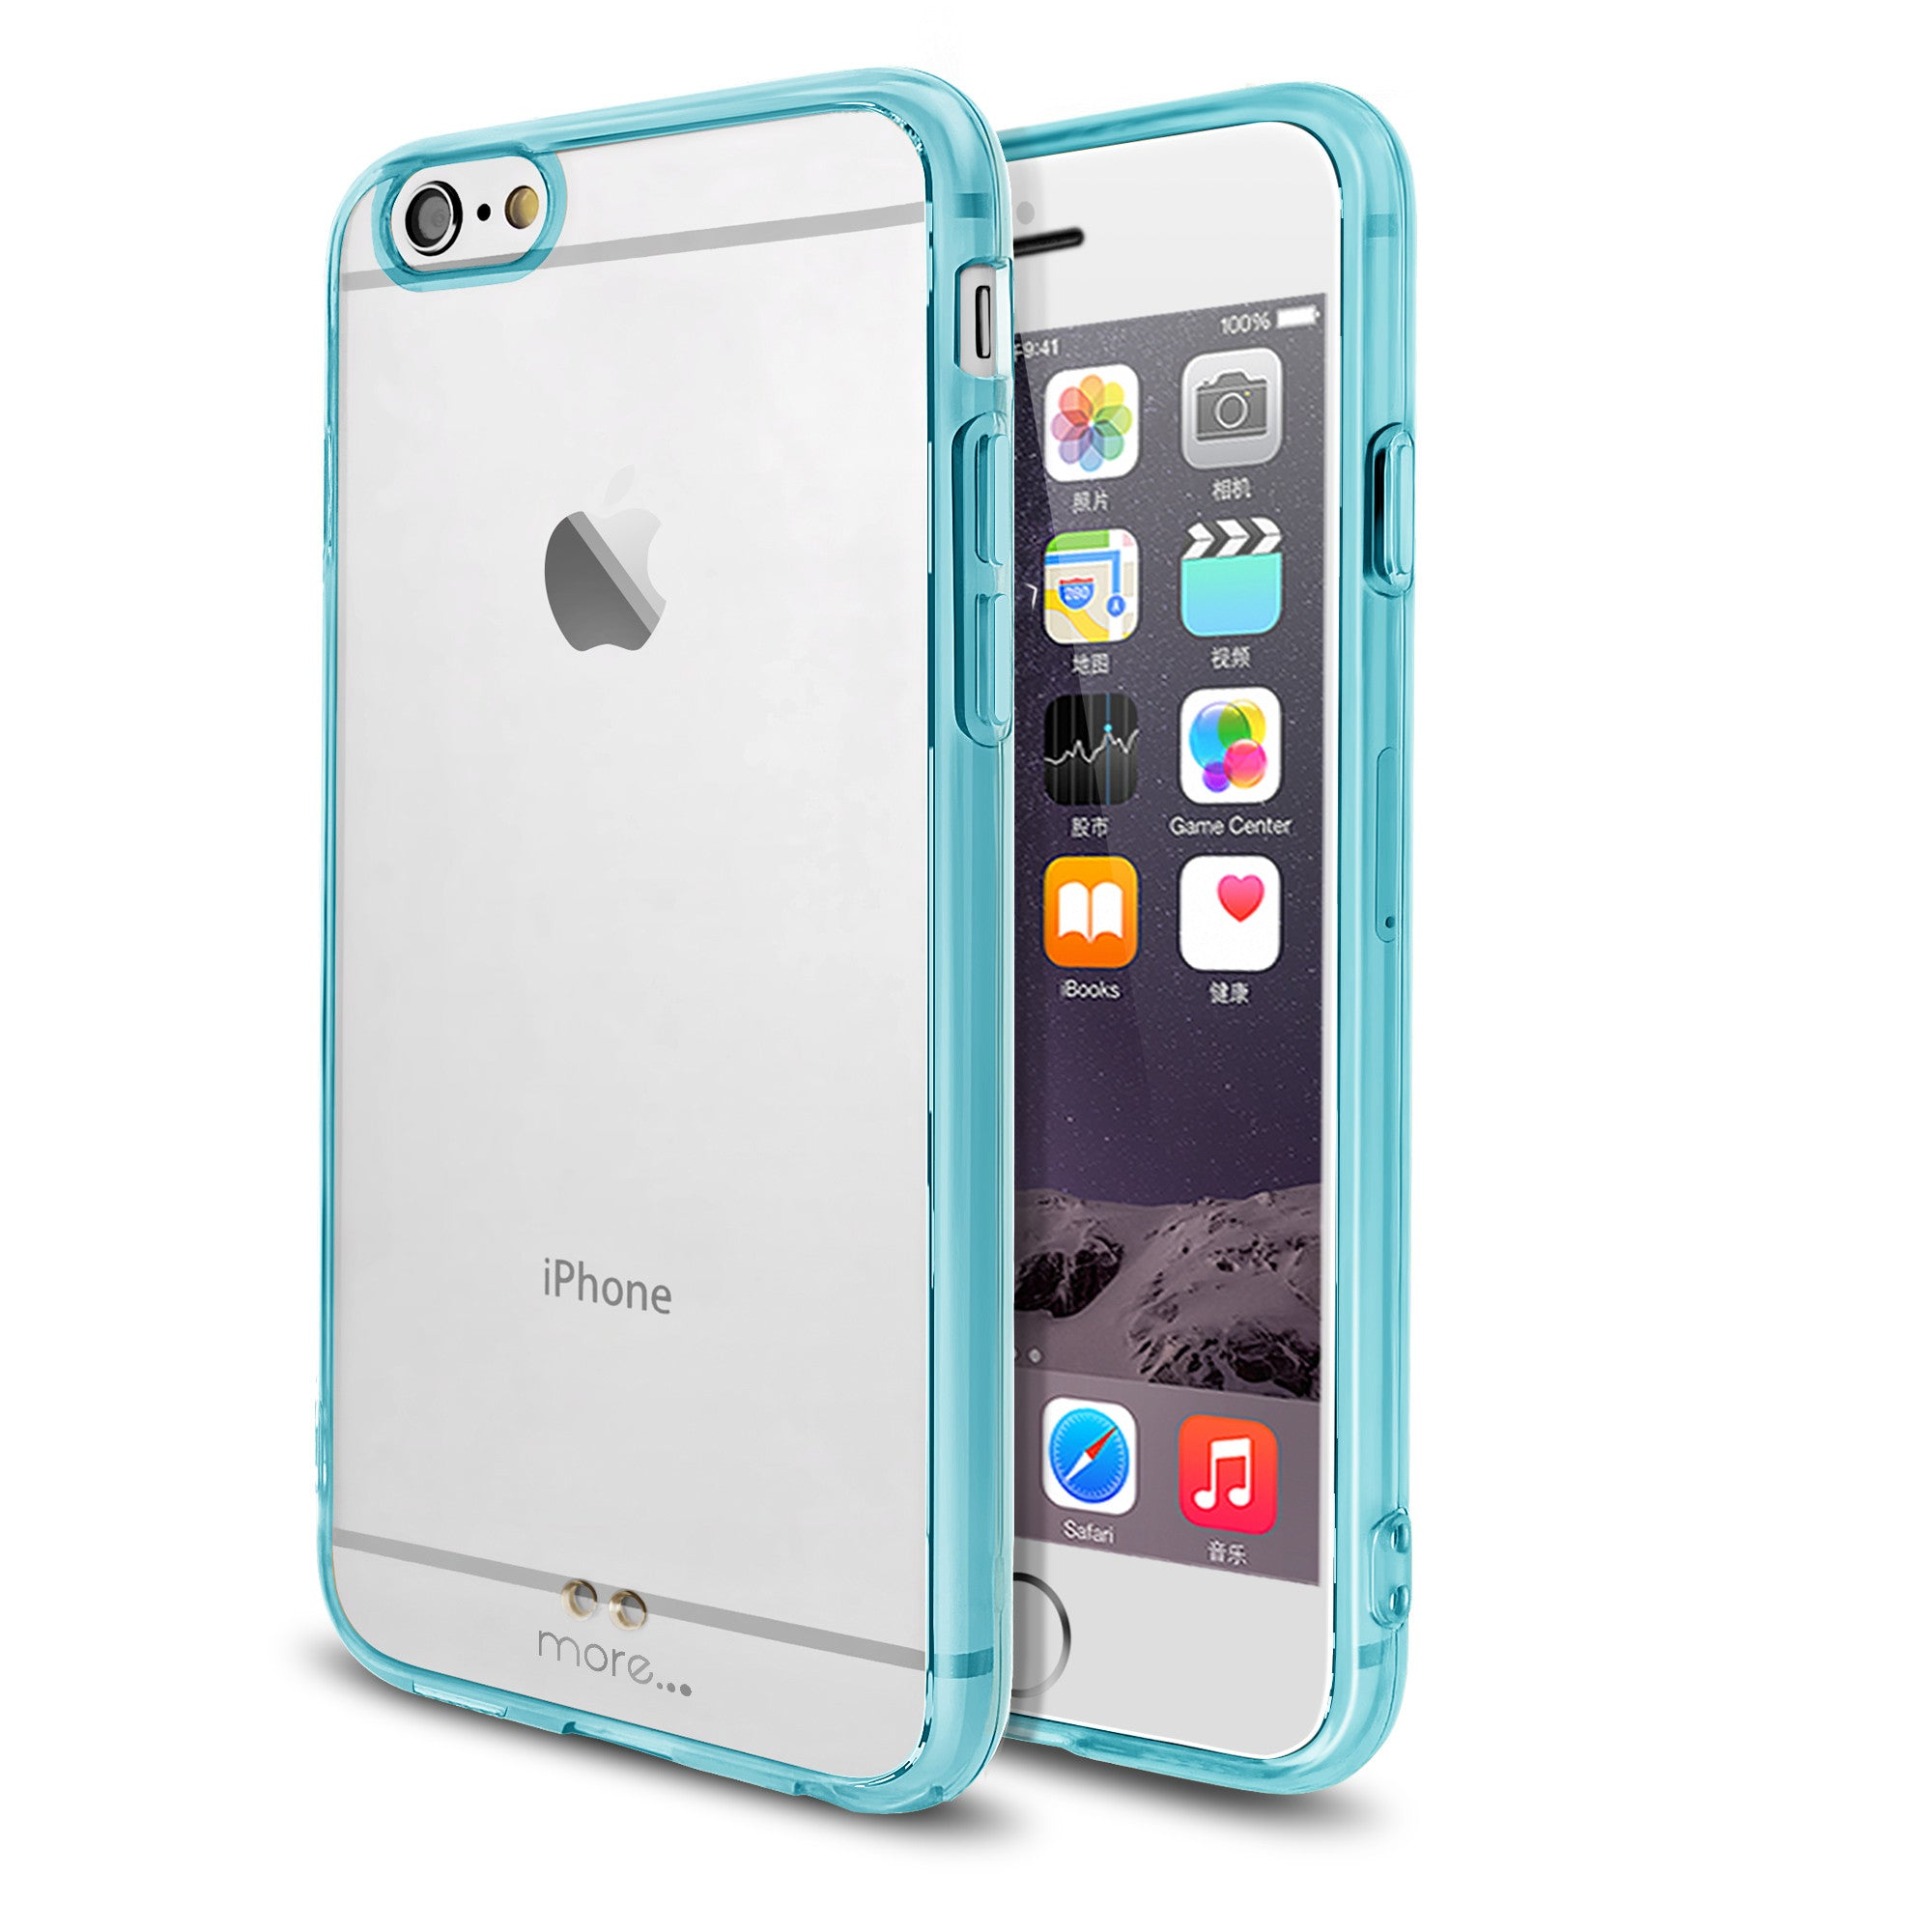 a6175b69c4 More Ultra Thin BumperLicious Case + Clear Hard Back Series for iPhone 6S / iPhone  6 ...